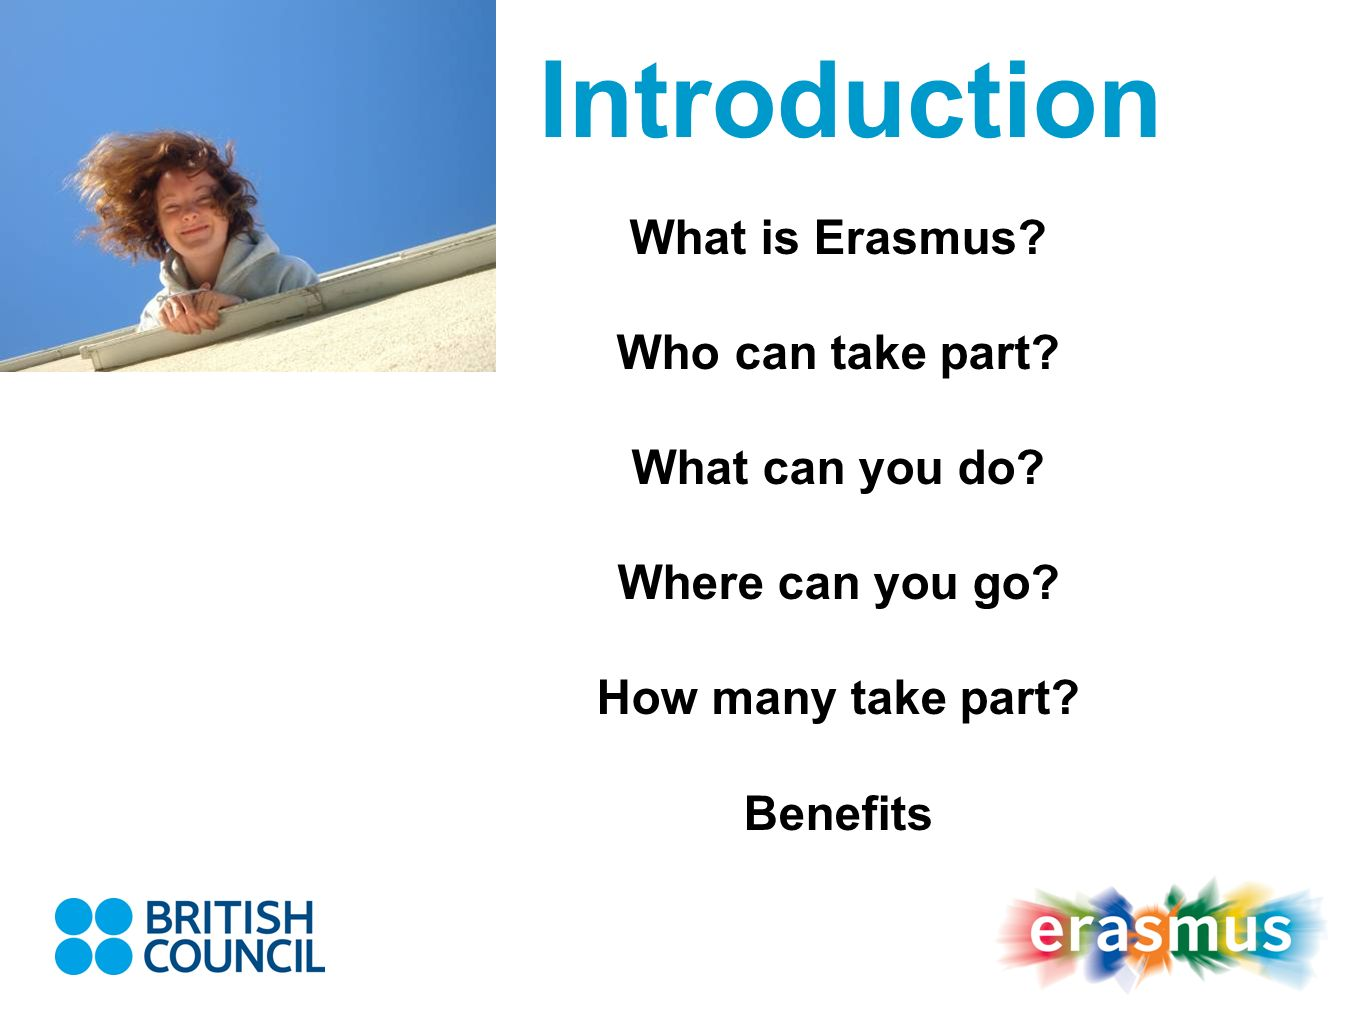 Introduction What is Erasmus? Who can take part? What can you do? Where can you go? How many take part? Benefits